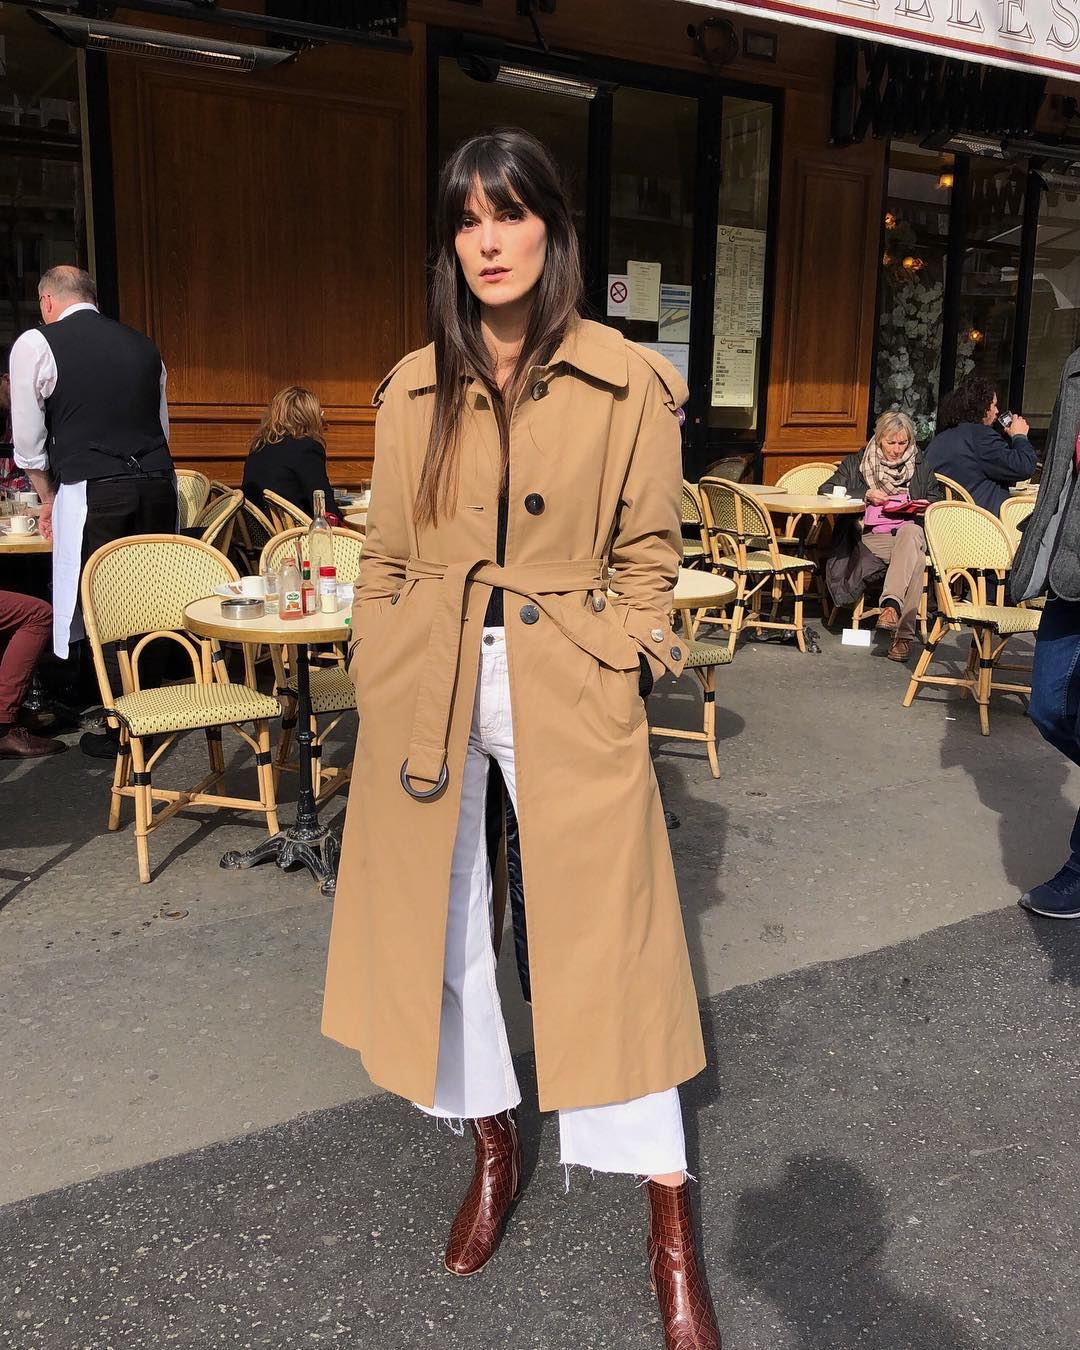 French-Girl Spring Outfit Idea —Leia Sfez in a trench coat, cropped white jeans, and ankle boots